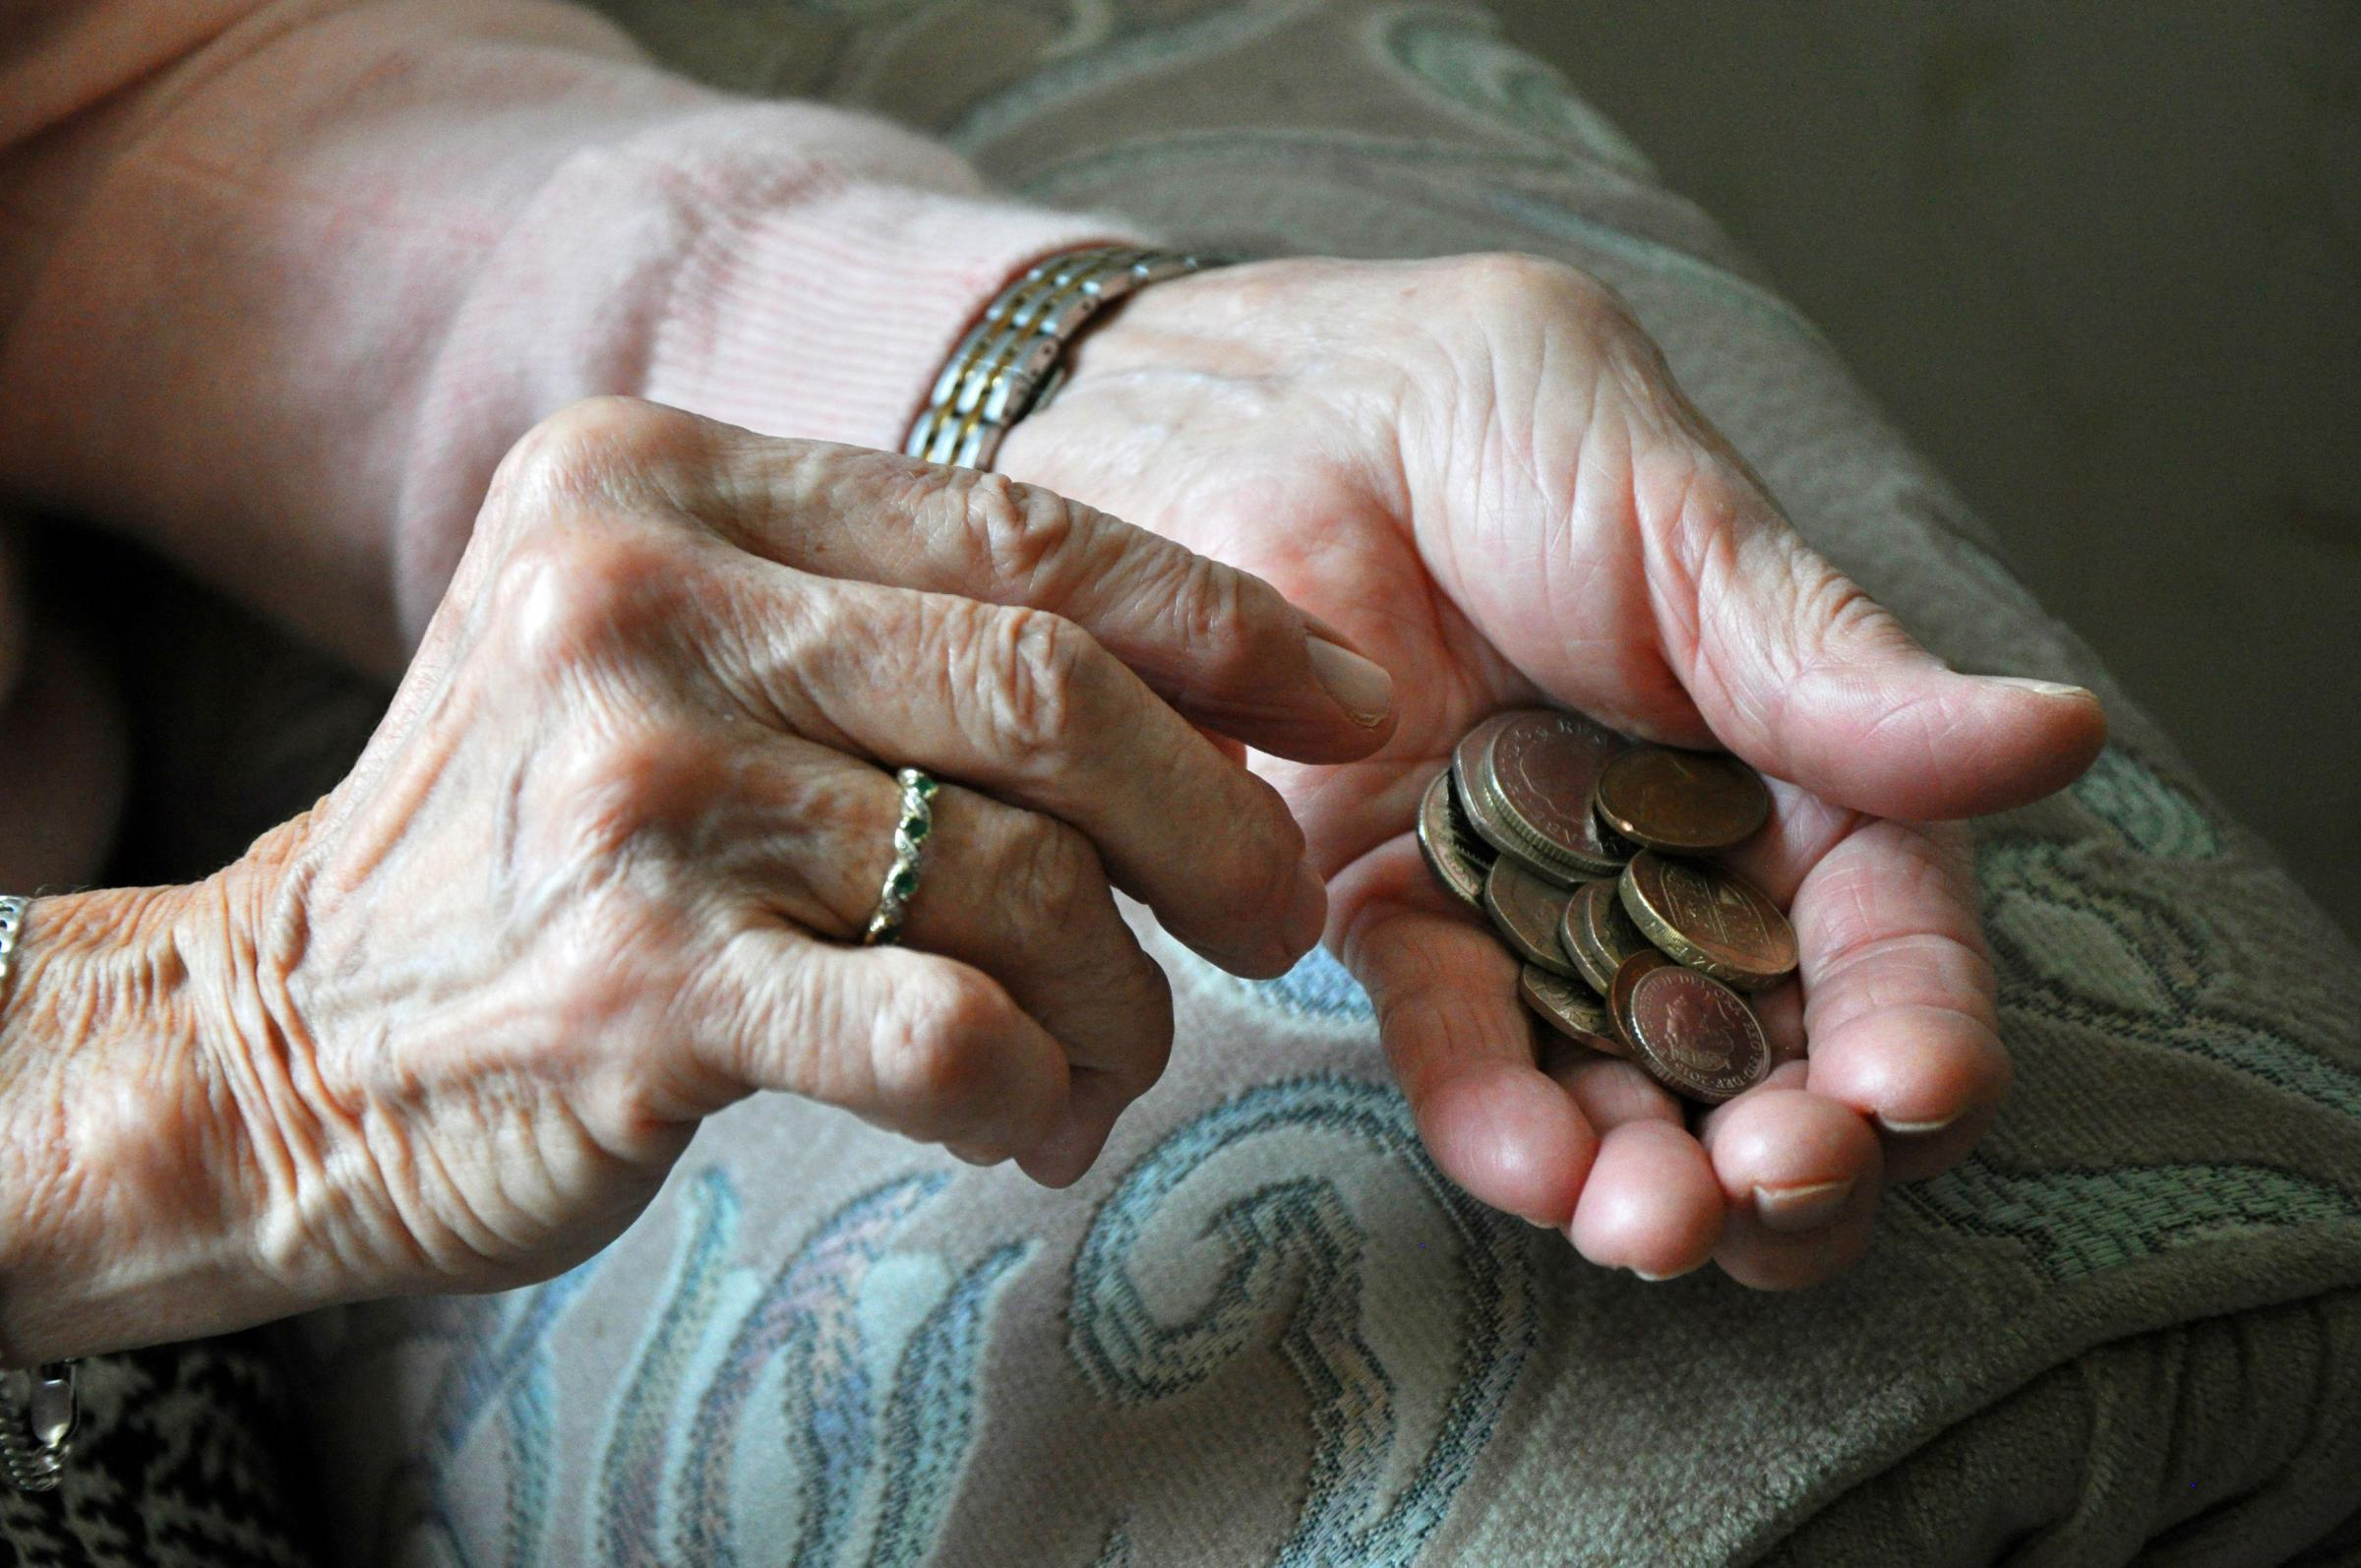 Letter writer Anne Jordan says the Government should sort out pensions